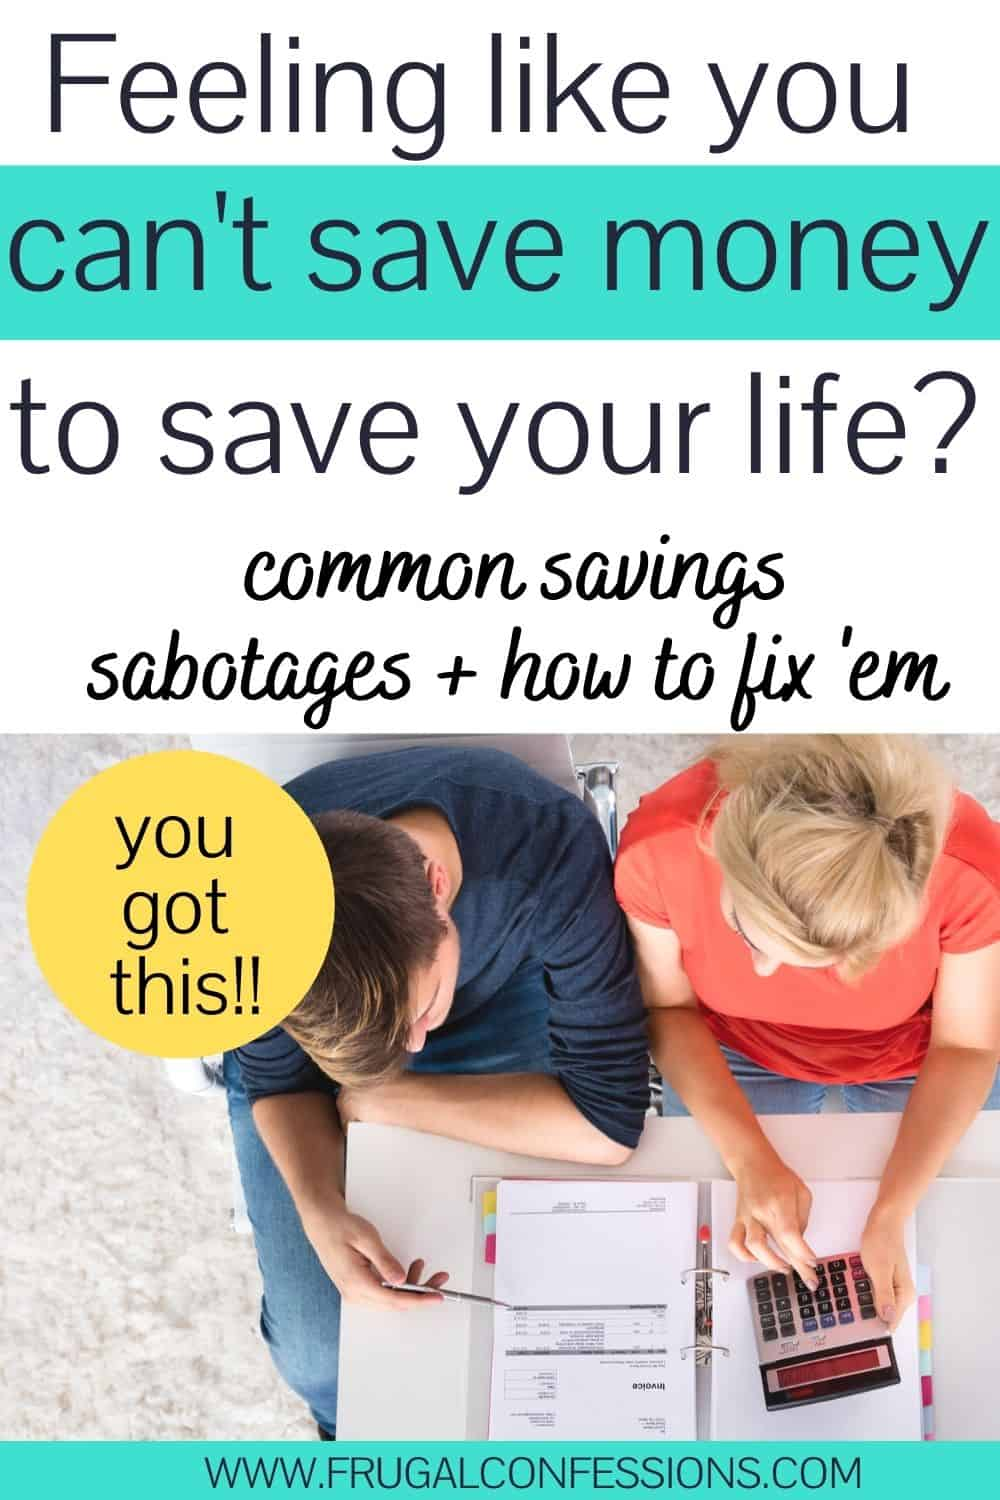 """couple looking over their finances with calculator and papers, text overlay """"feeling like you can't save money to save your life? common reasons for not saving money"""""""